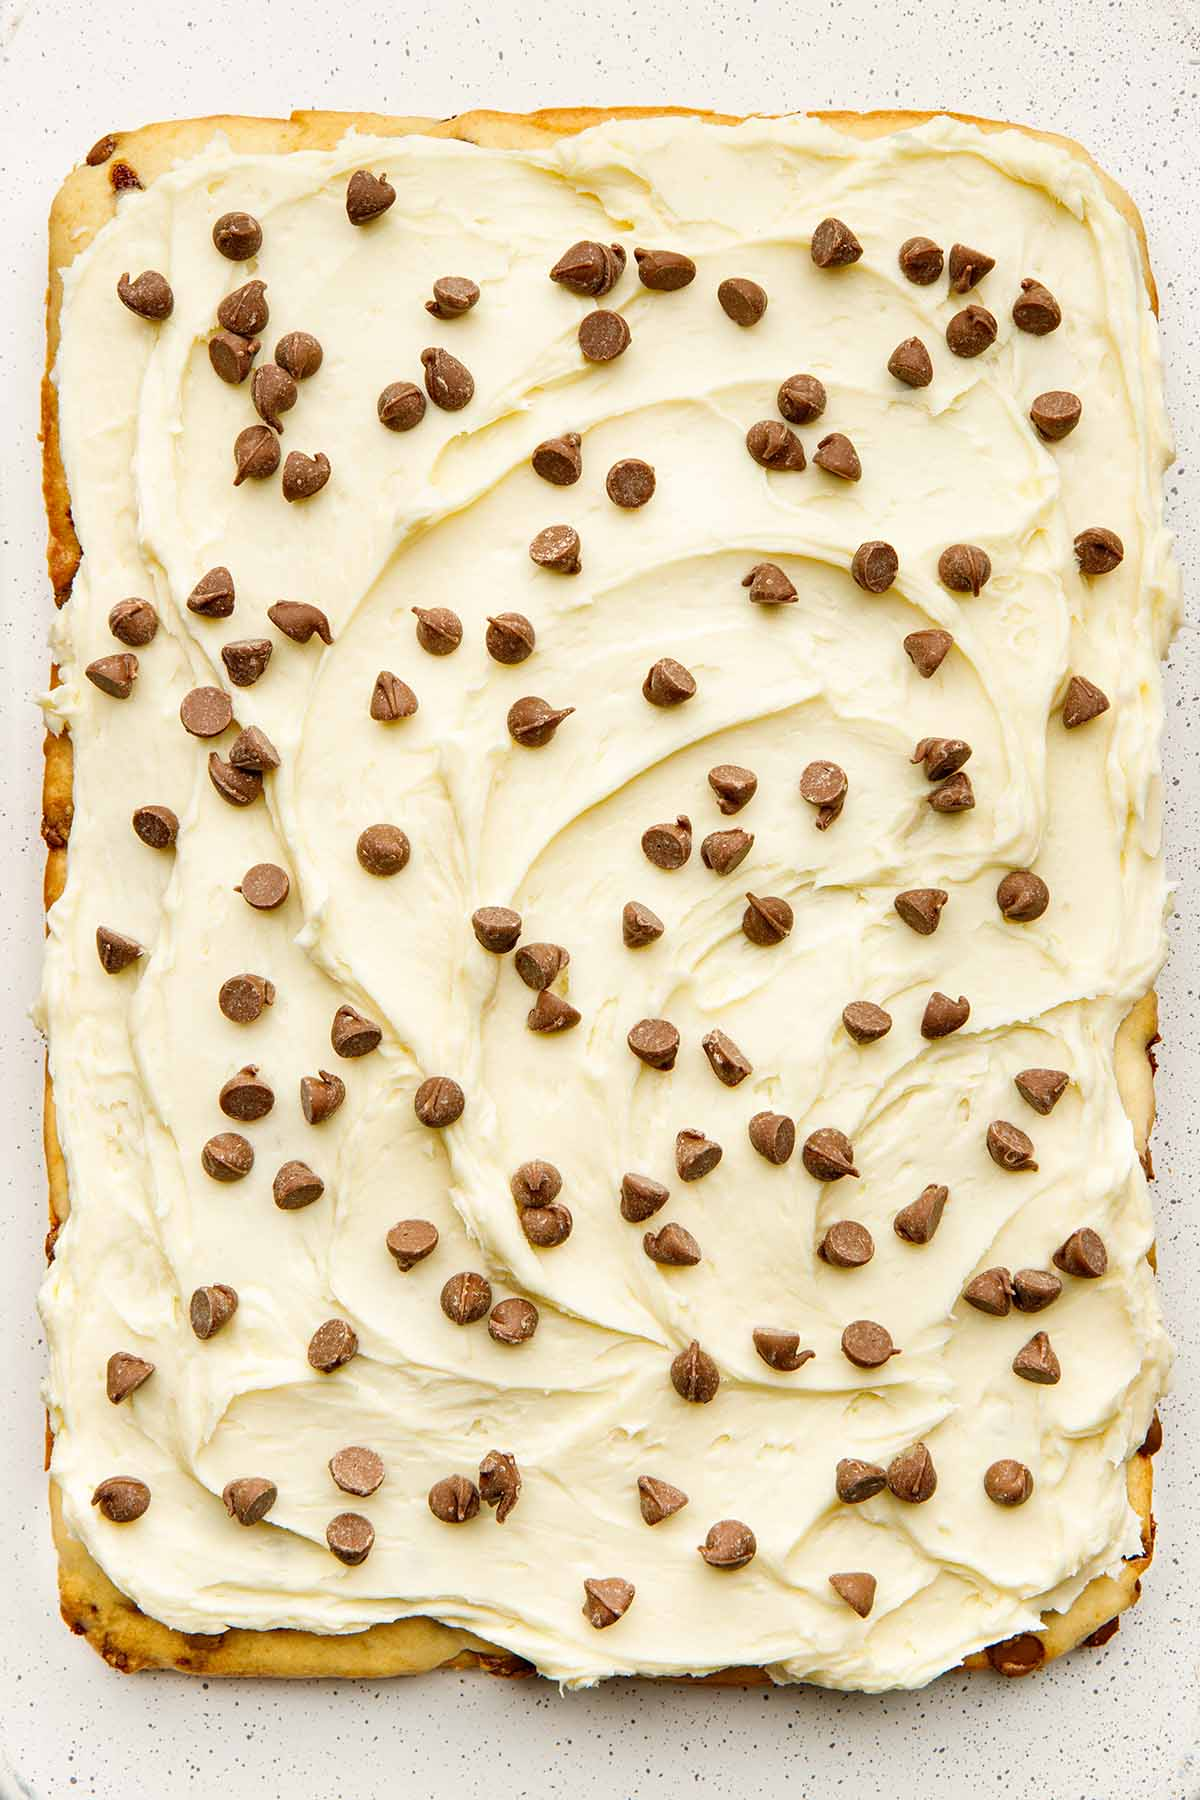 A cake with frosting and chocolate chips.